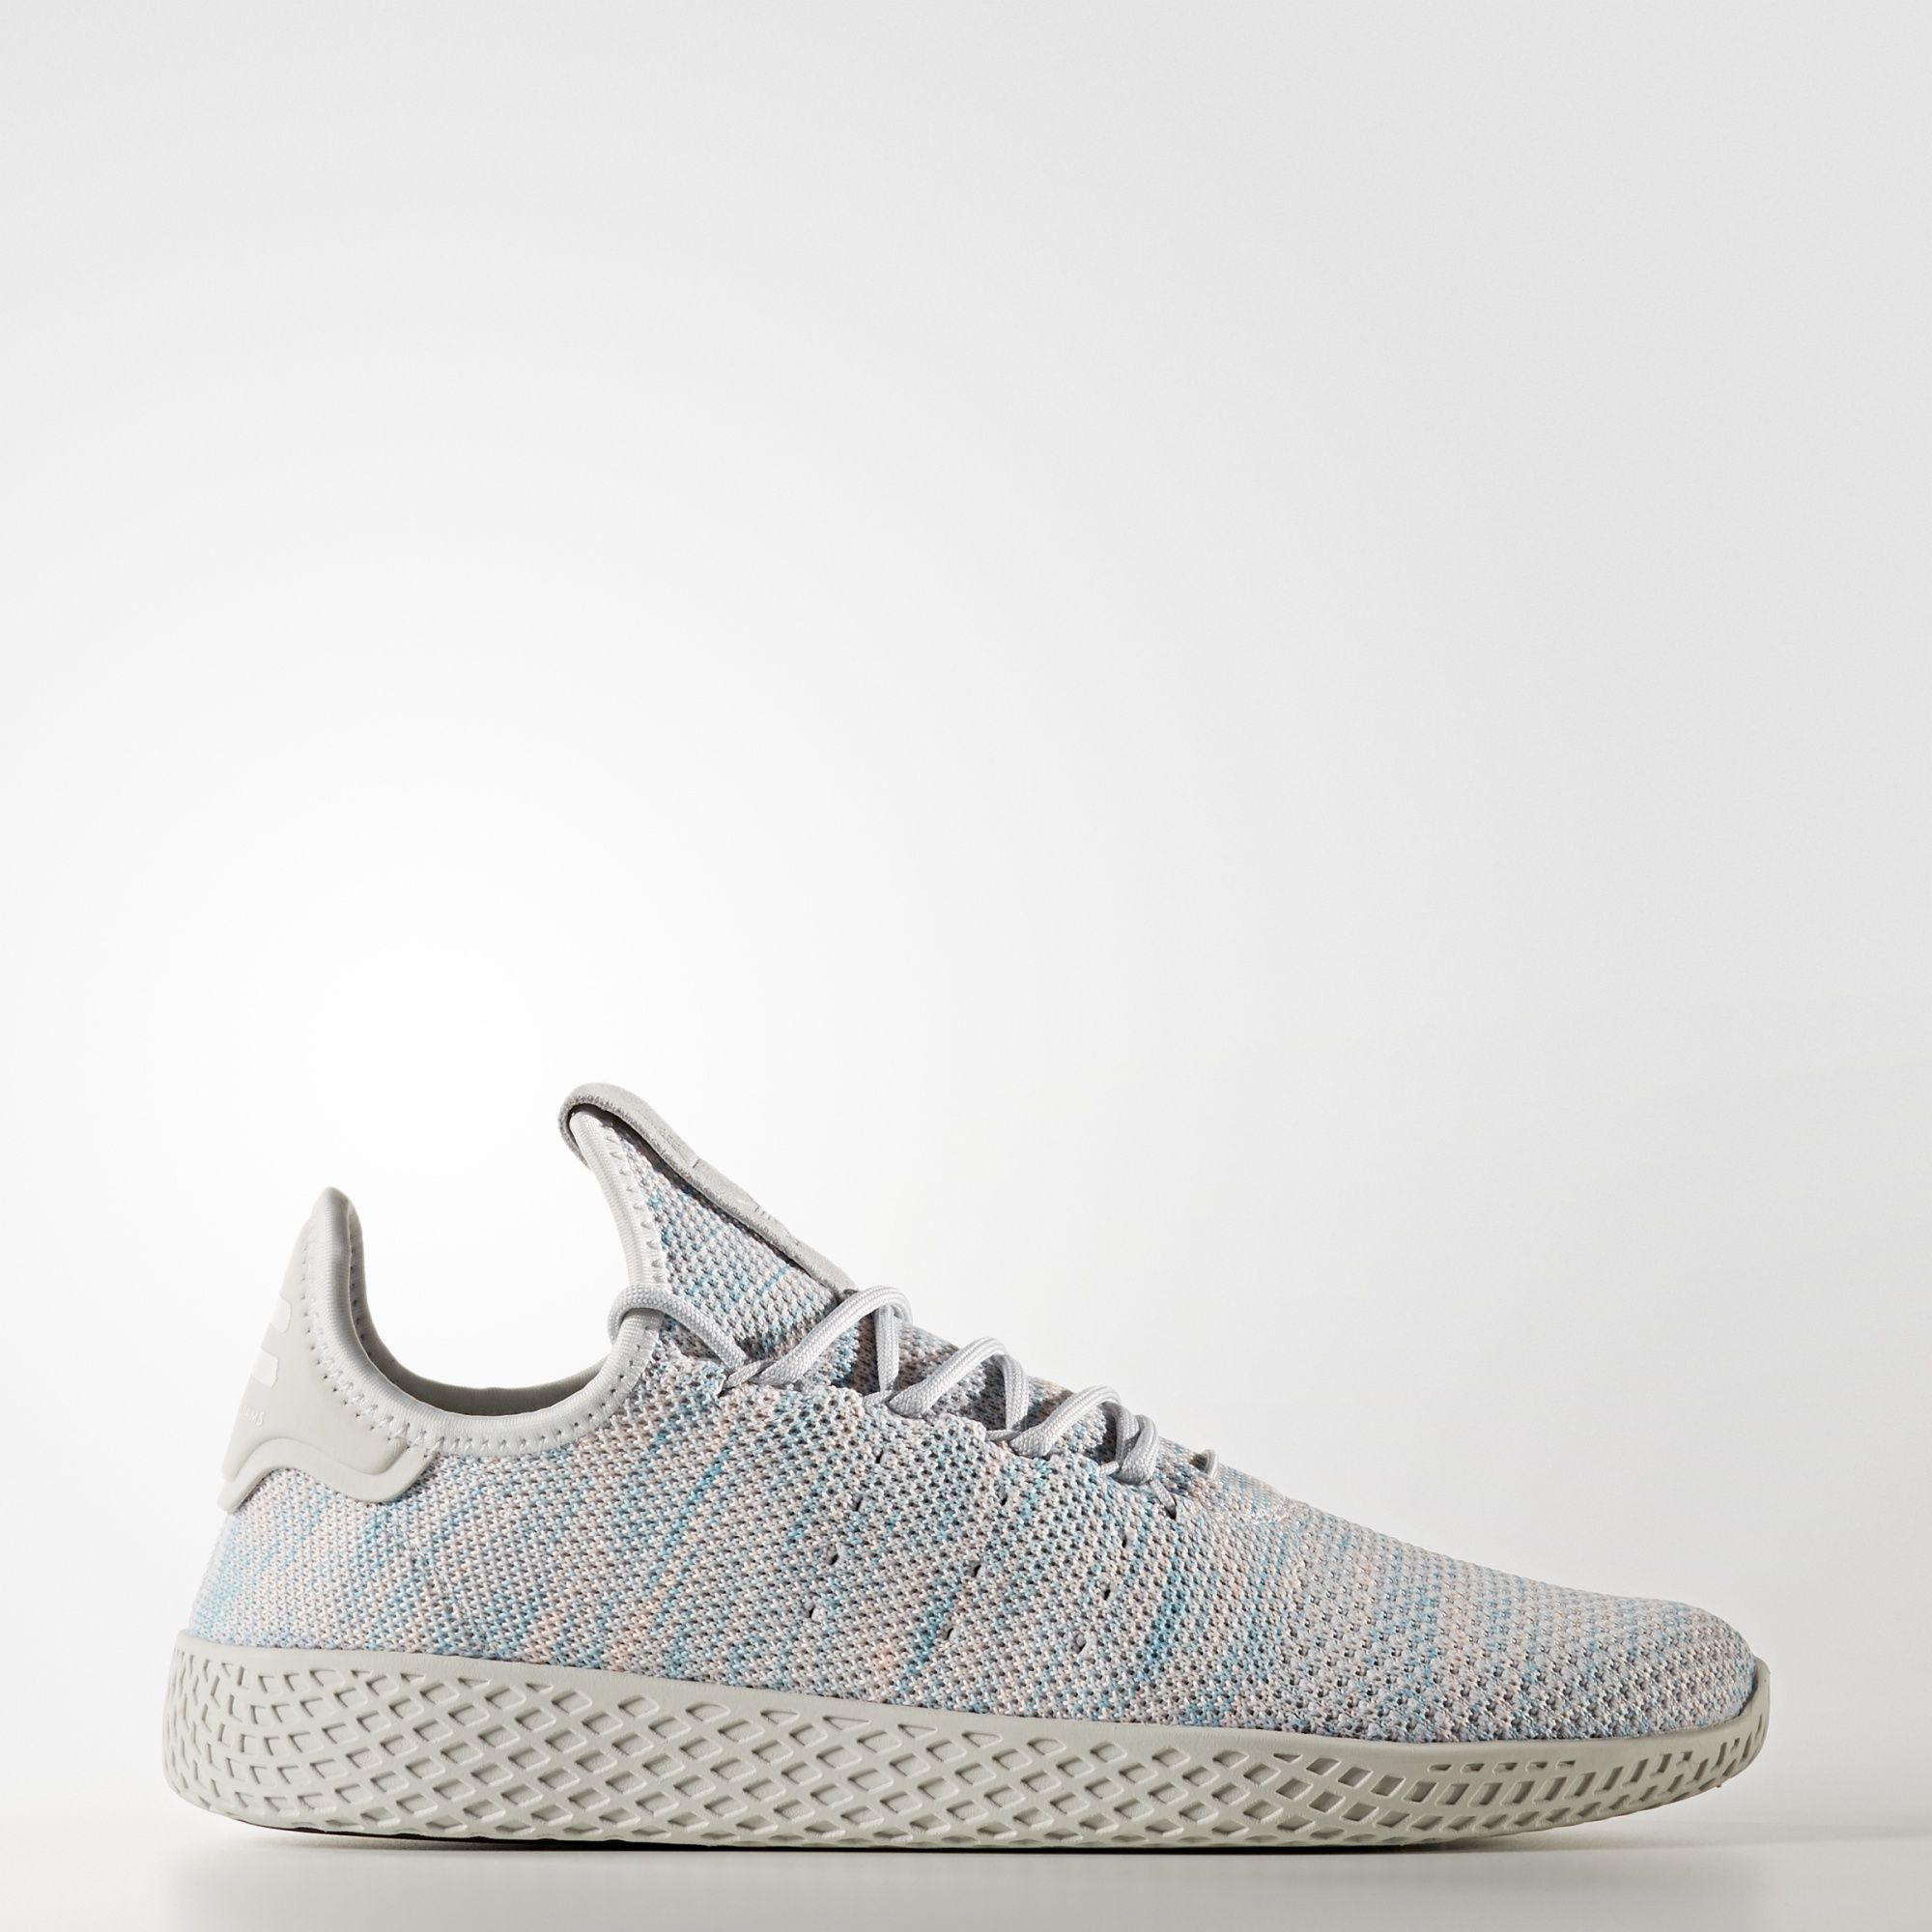 b3ad89258 adidas - Pharrell Williams Tennis Hu Shoes